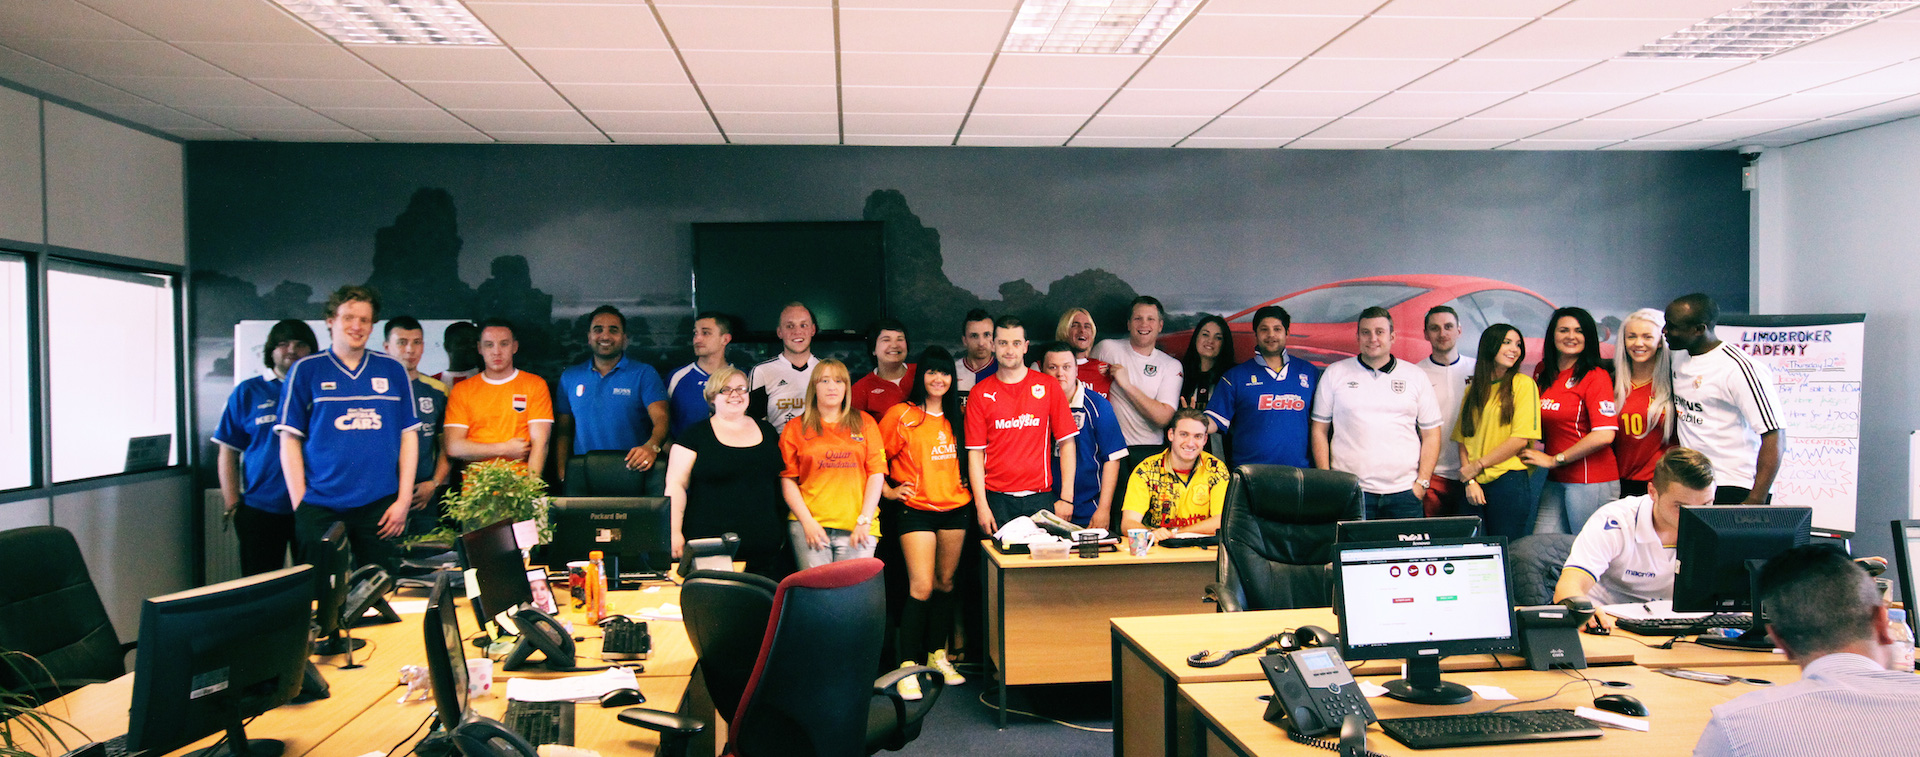 Transport Broker Group Celebrate World Cup Kick Off With Healthy Charity Donation